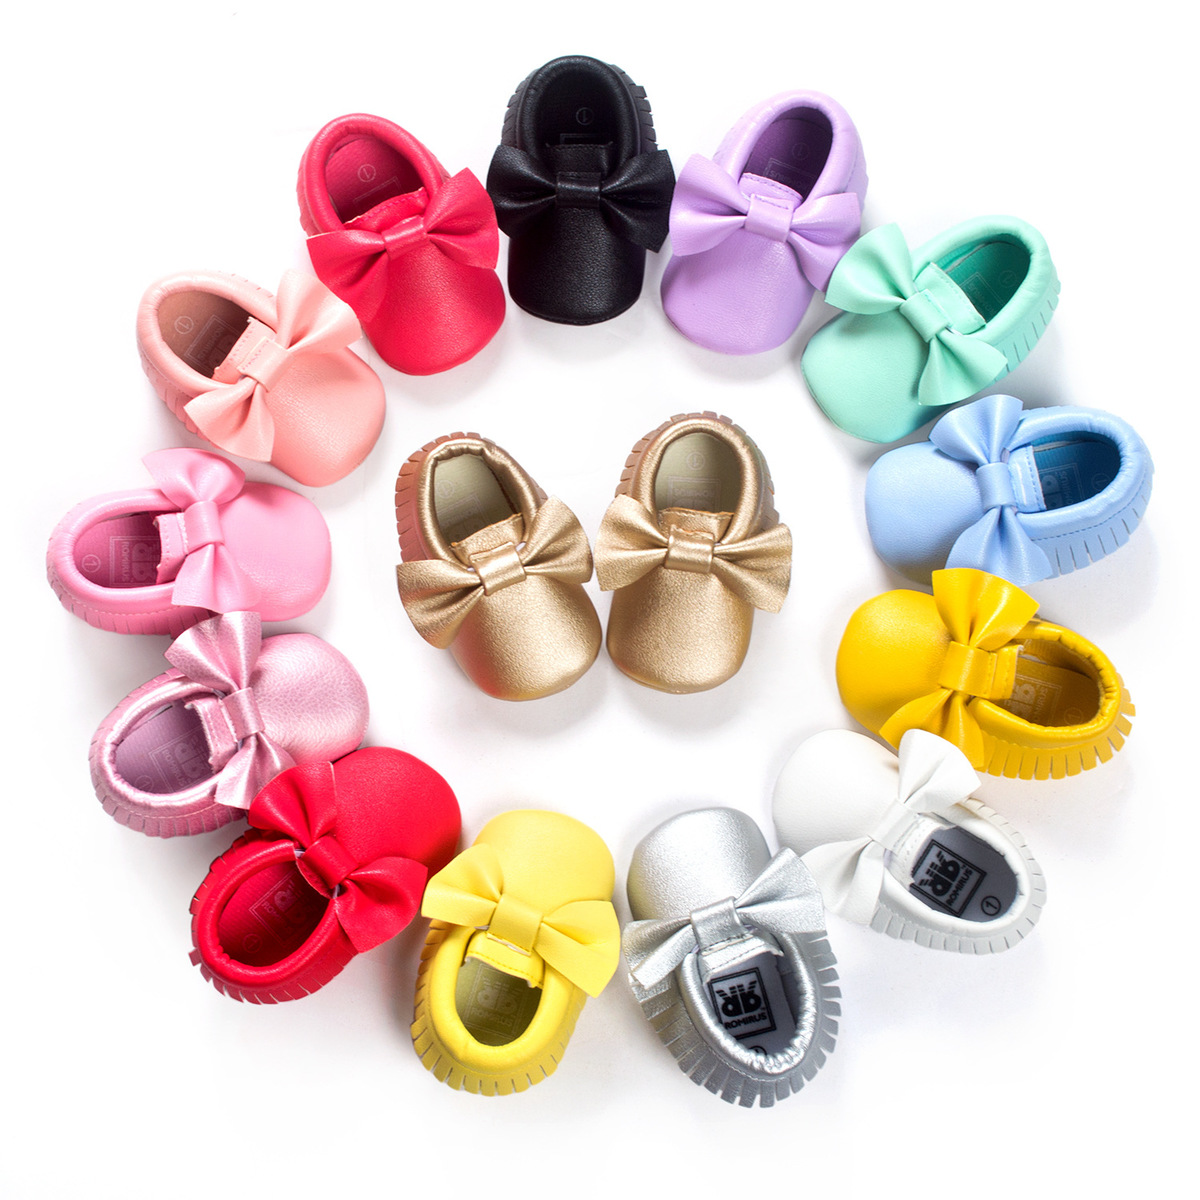 2018 High Quality Fashion Infant Baby Boys Girls Pu Leather Shoes Toddler Bebe Bowknot Non-slip First Walker Baby Moccasins